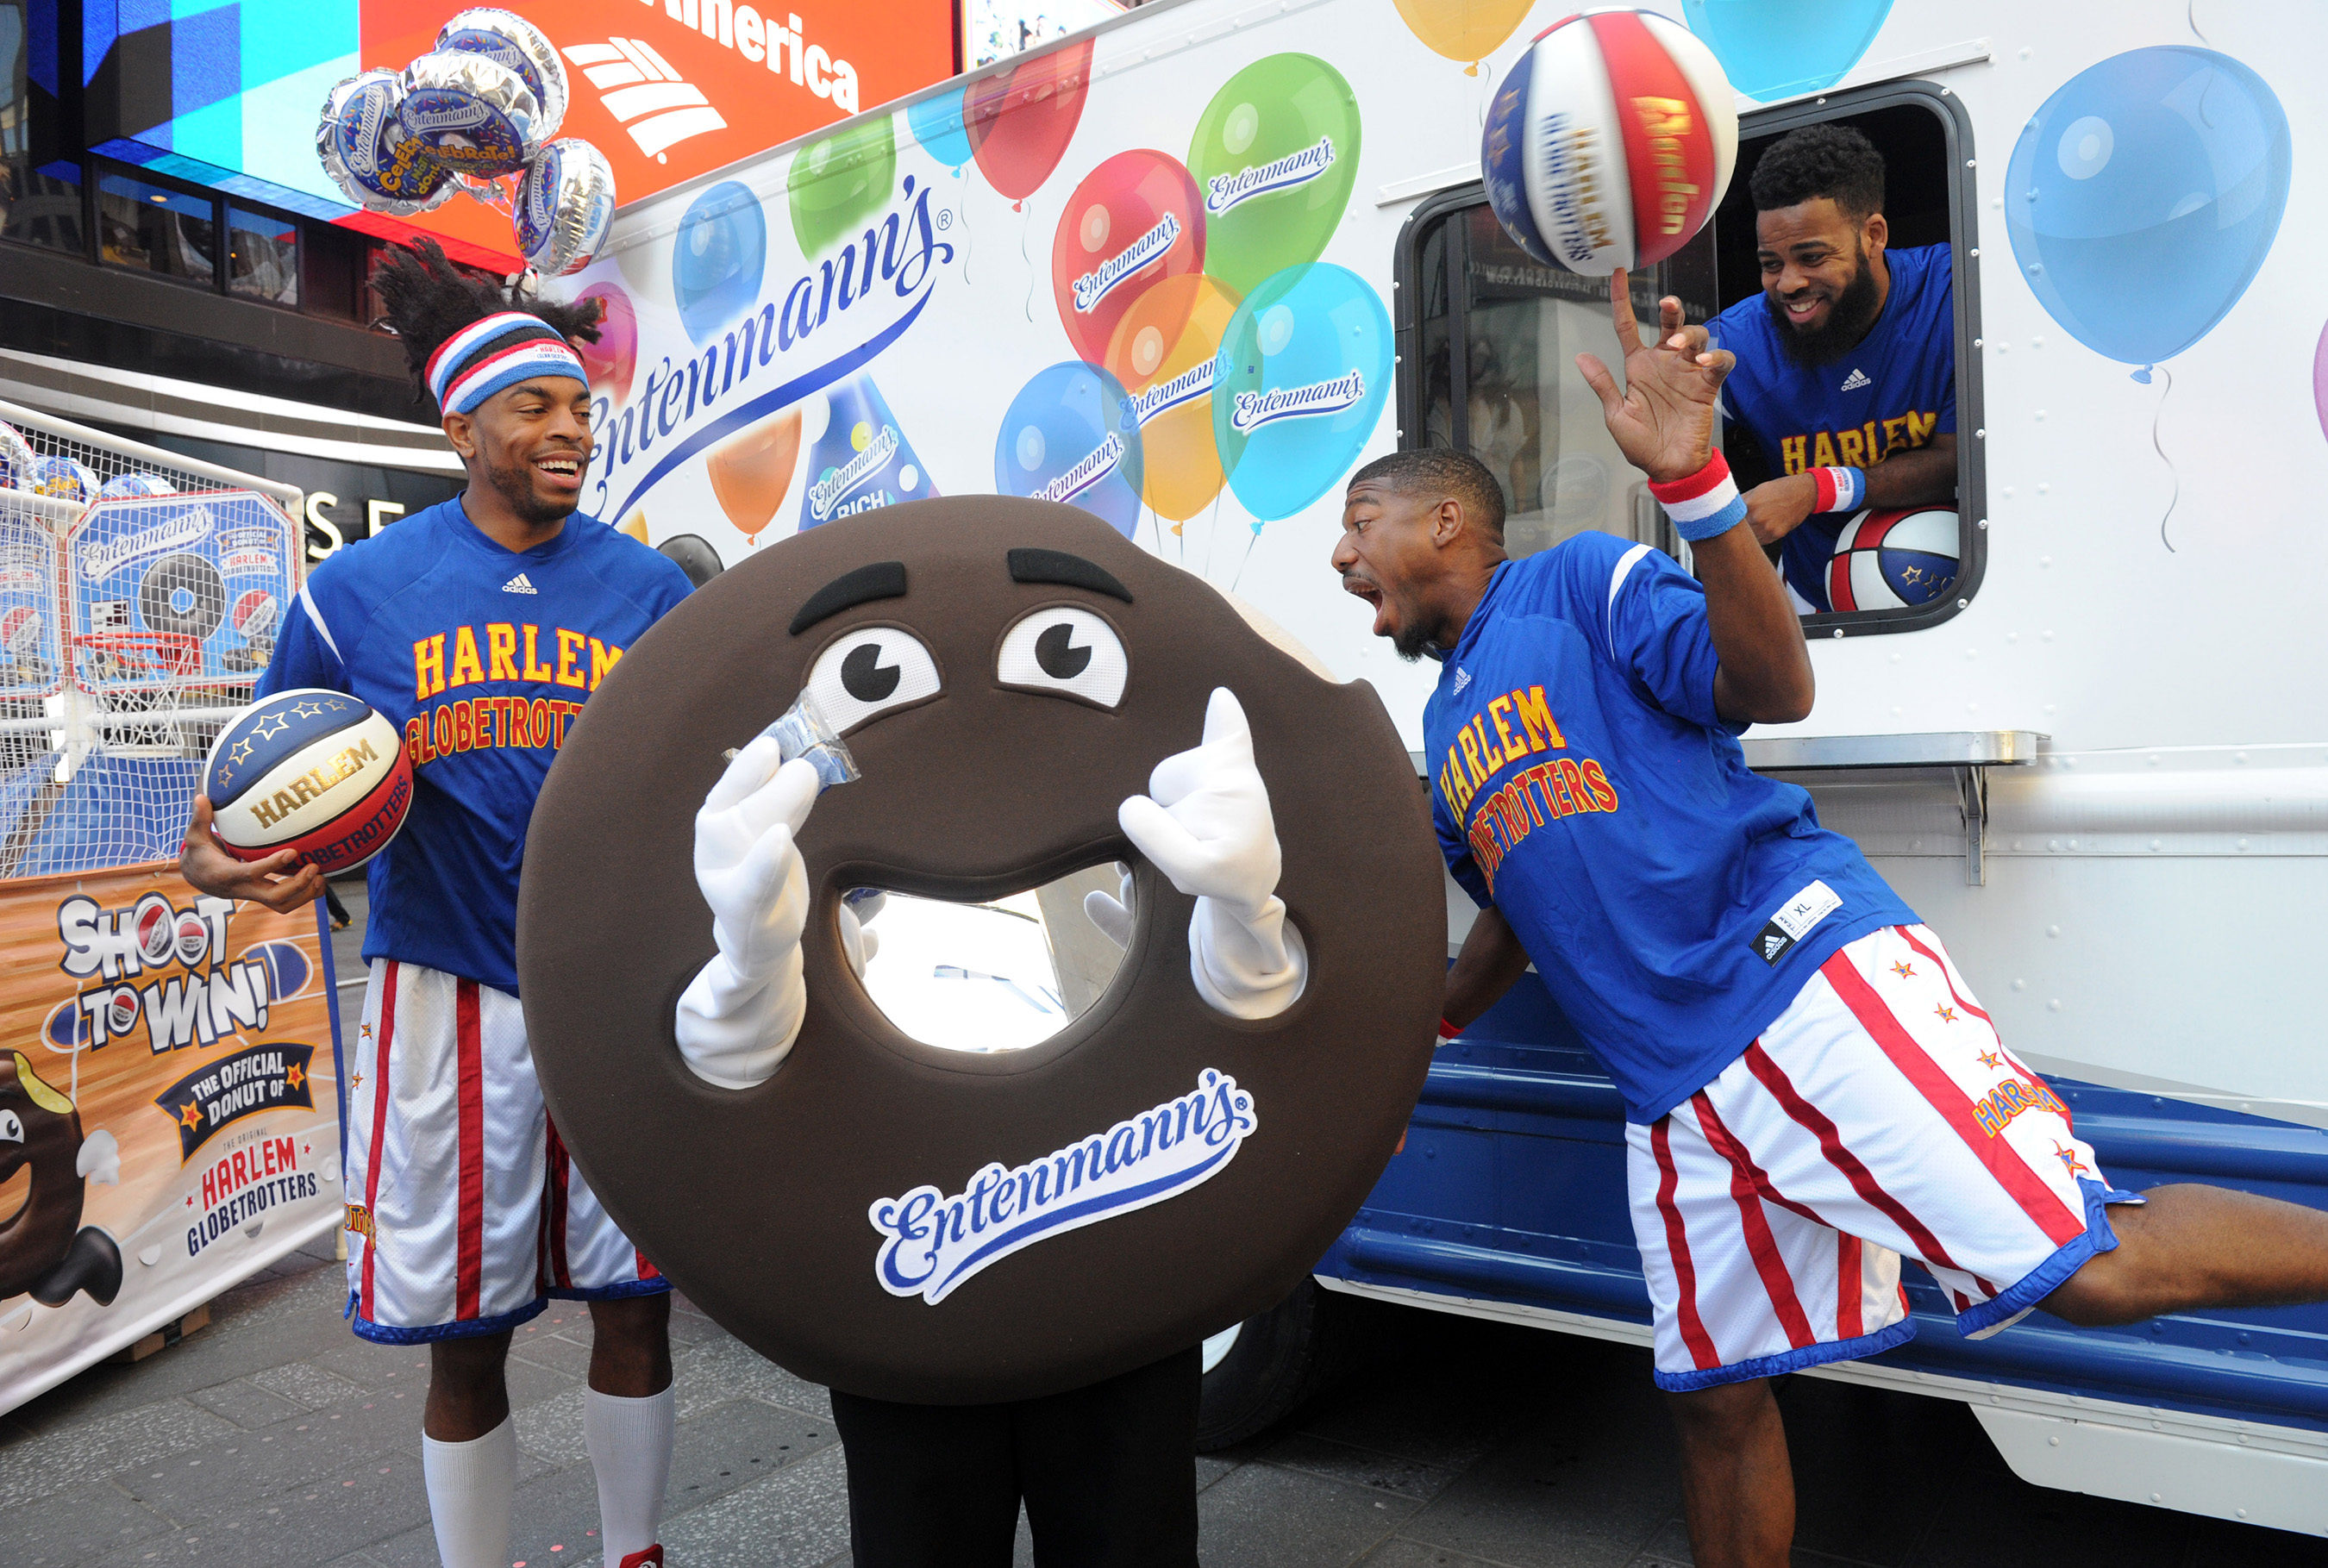 Buckets, of the world famous Harlem Globetrotters, takes a bite out of Mr. Rich Frosted to celebrate Entenmann's National Donut Day event in New York's Times Square, Friday, June 2, 2017.